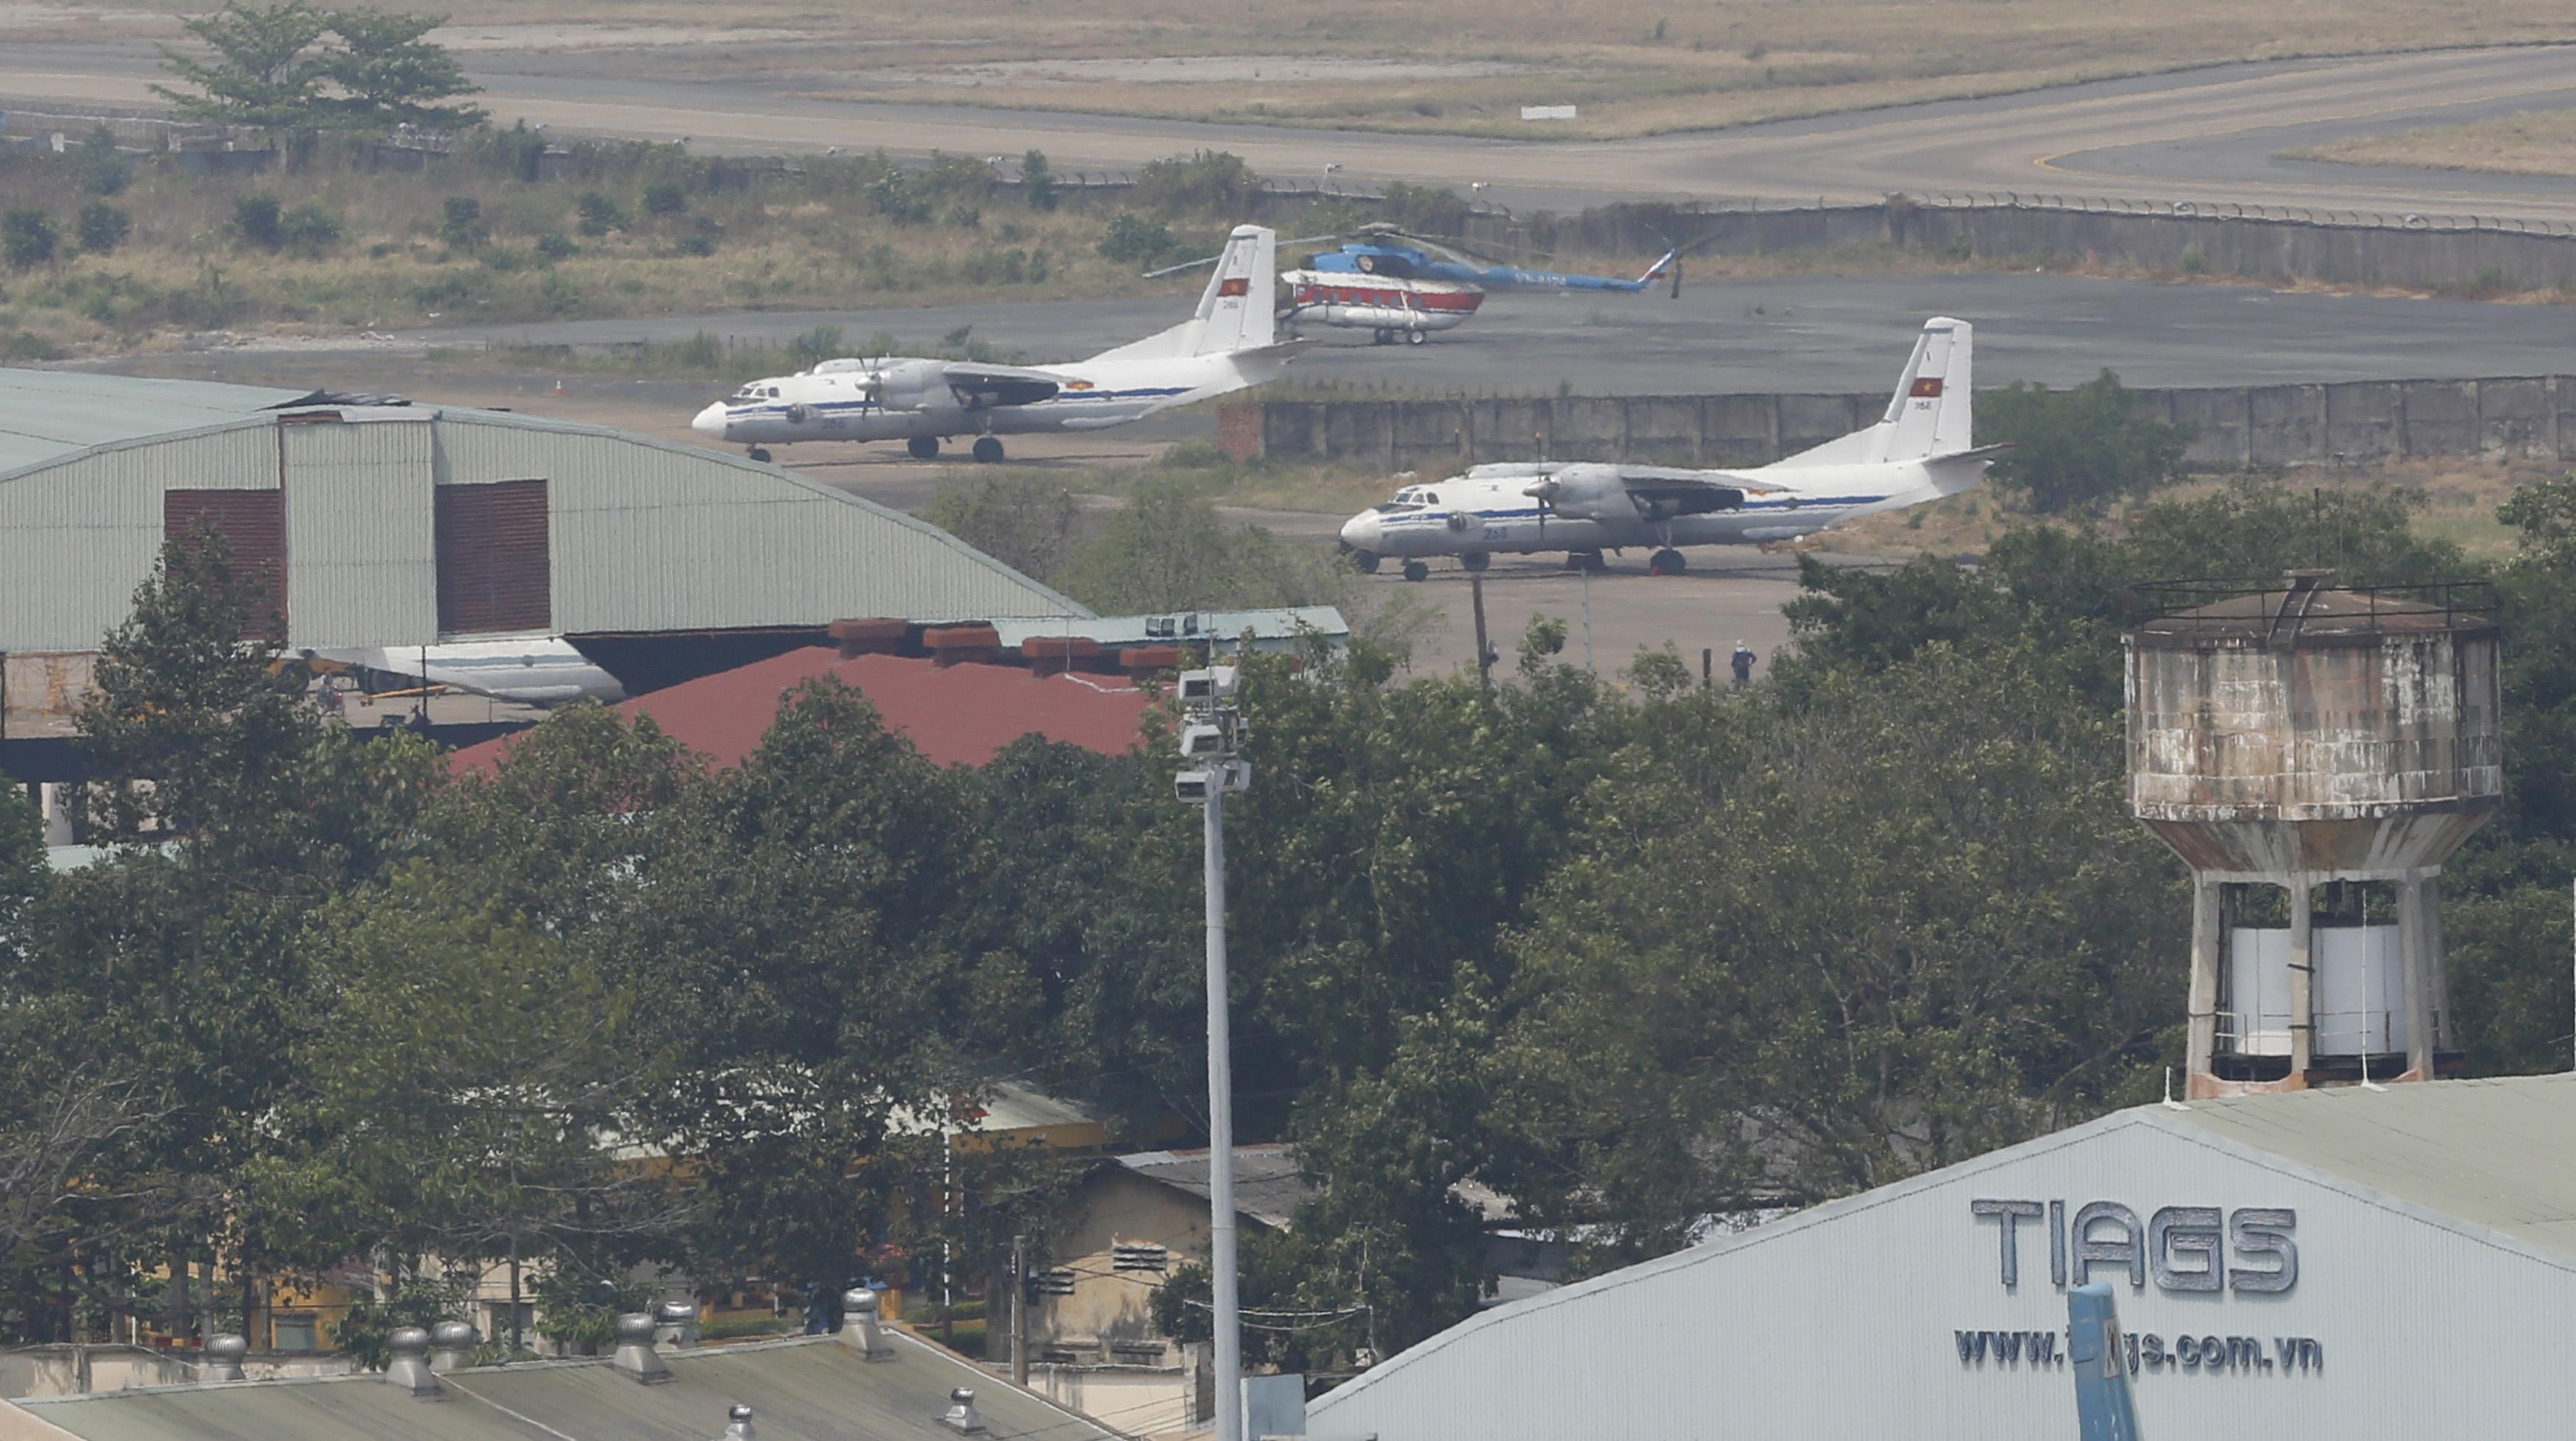 Mh370 military aircraft search